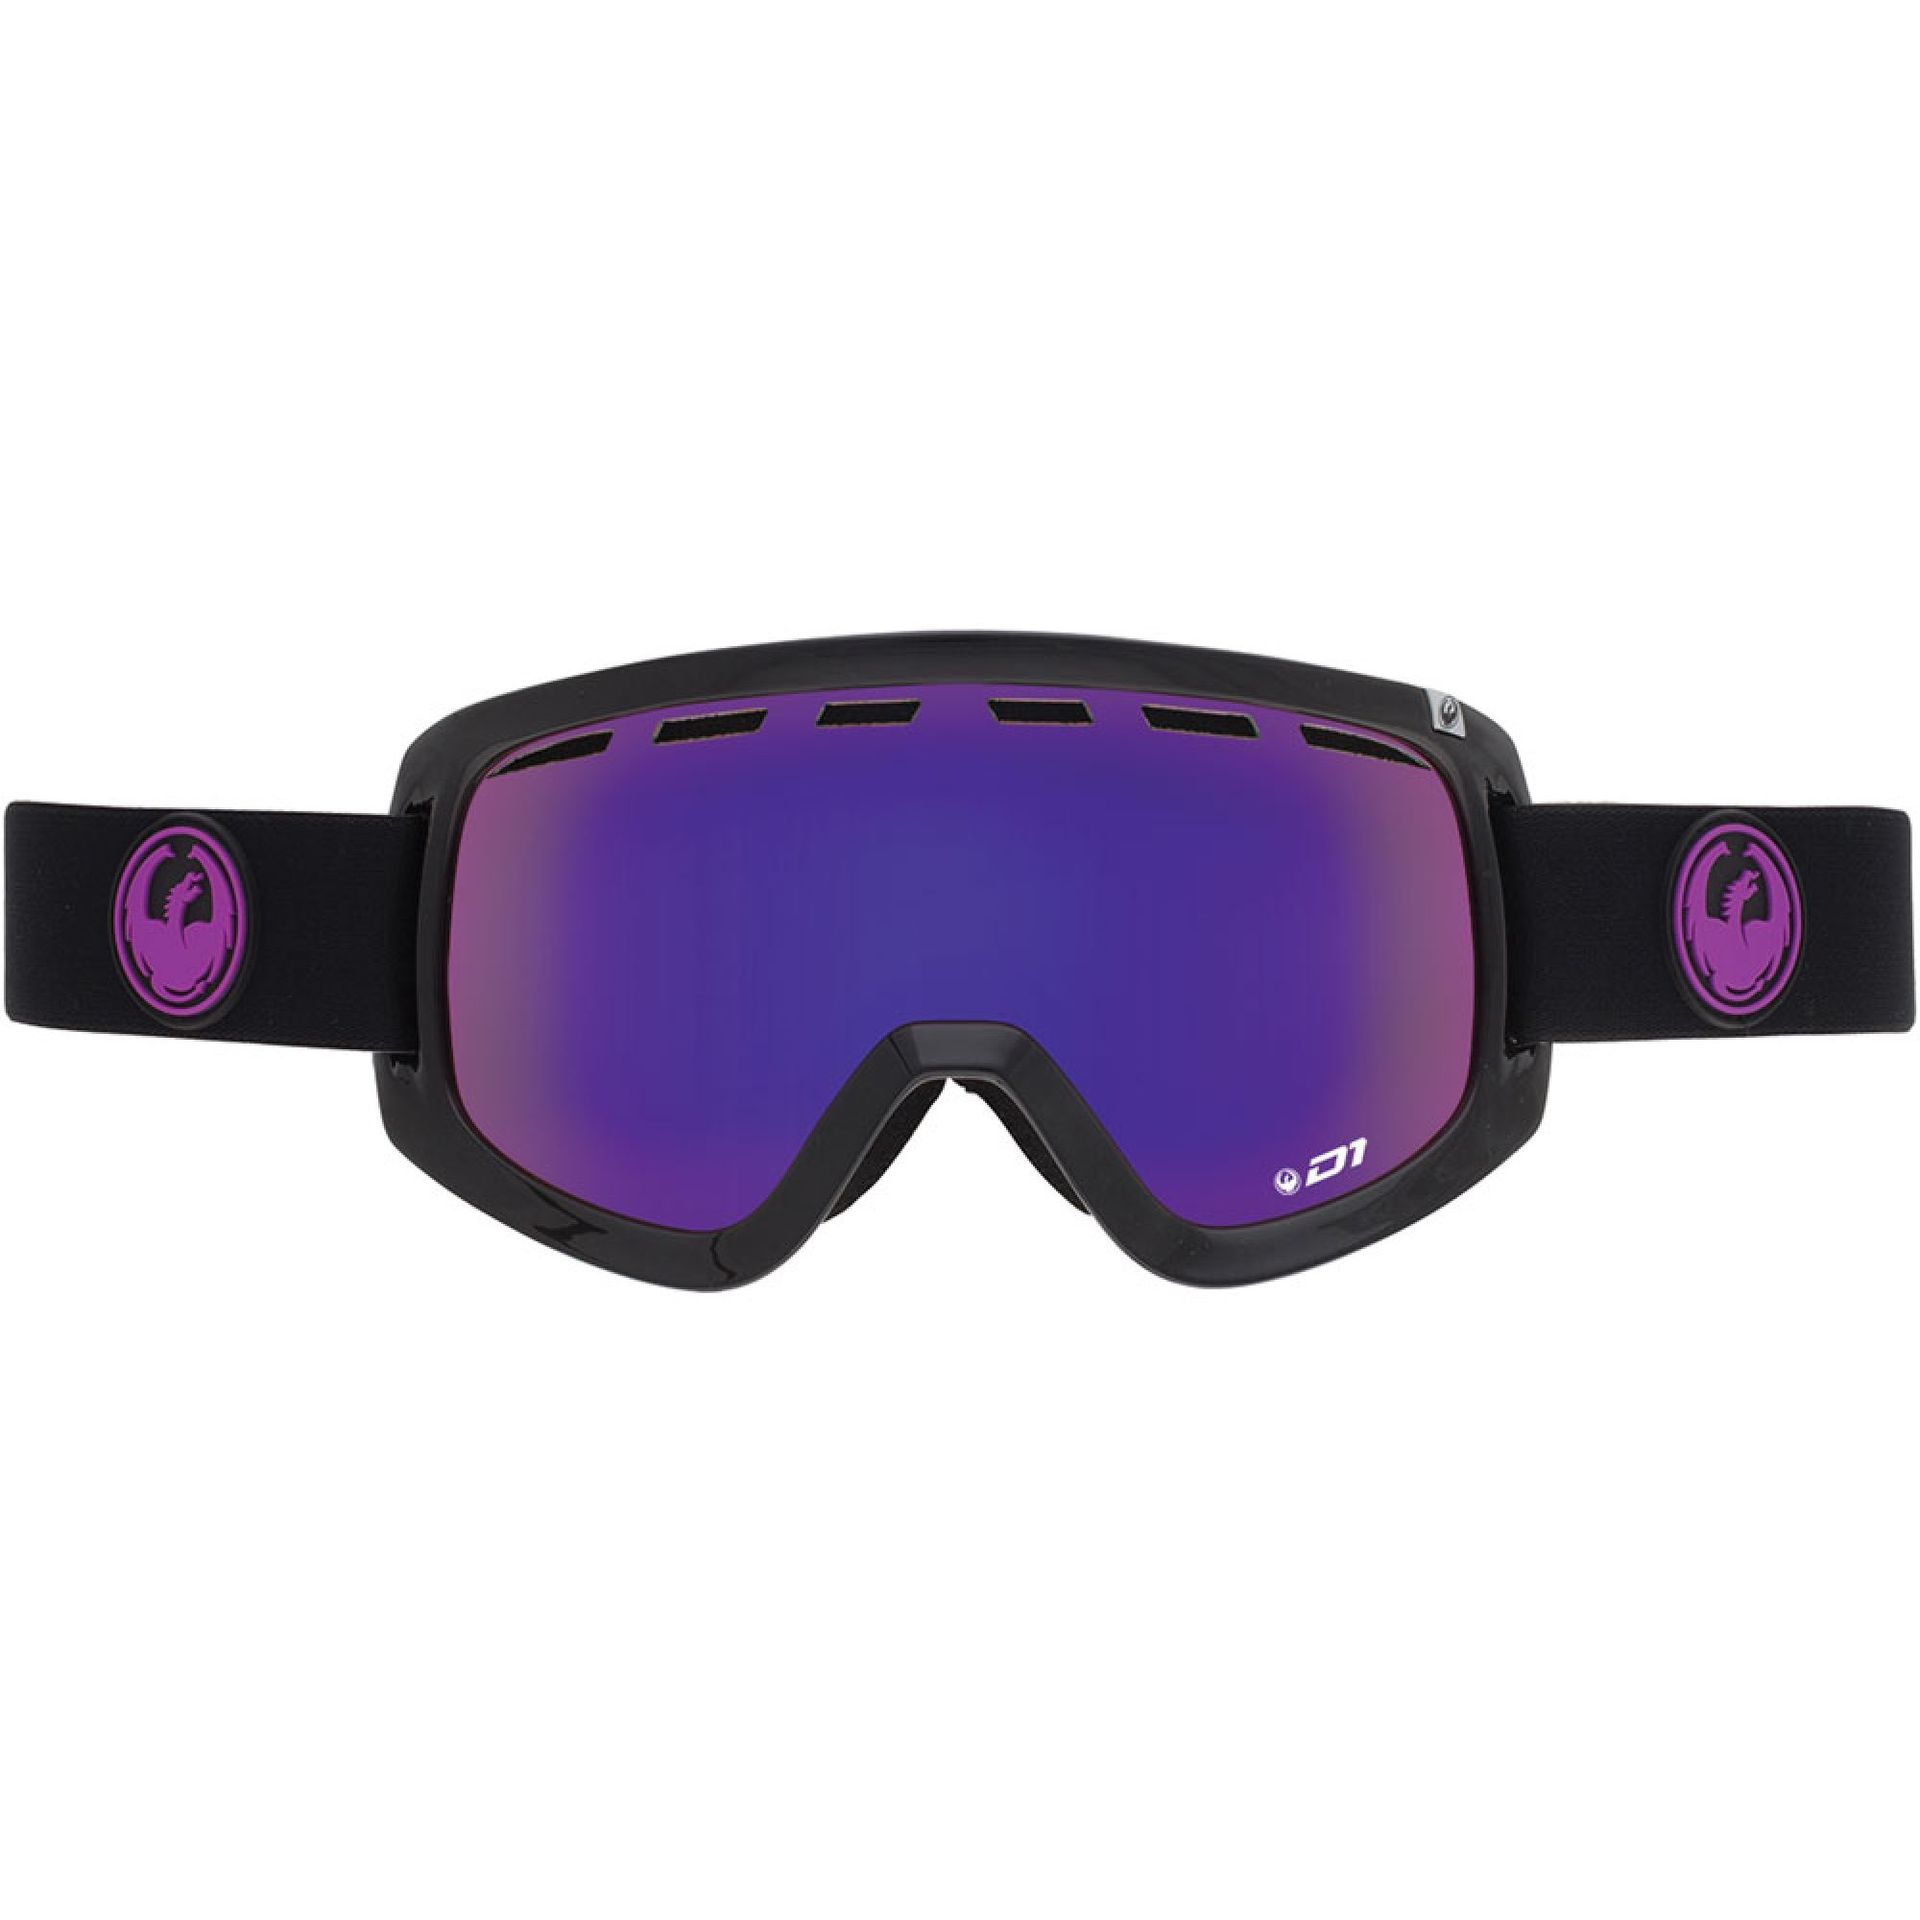 GOGLE DRAGON D1 JET PURPLE ION